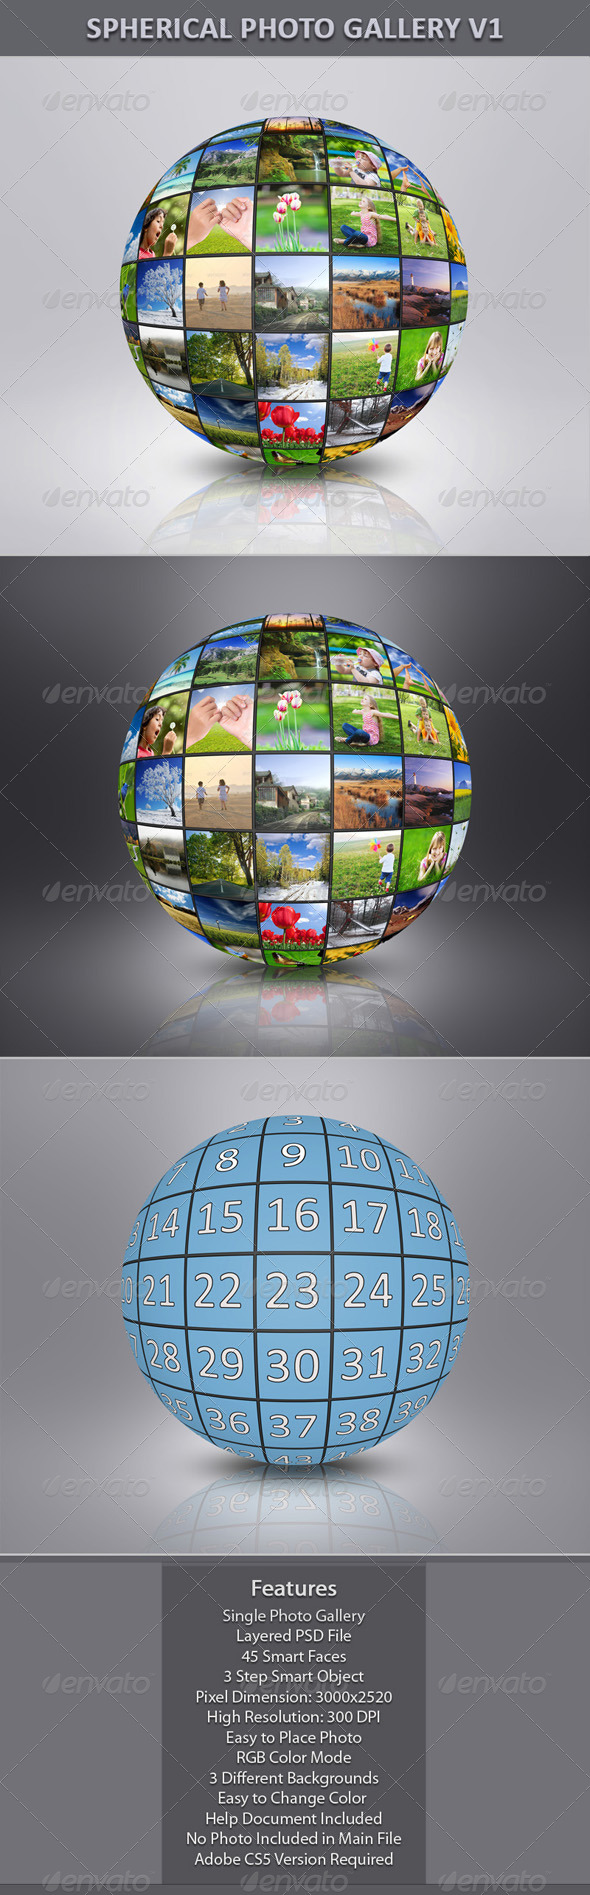 GraphicRiver Spherical Photo Gallery V1 7546000